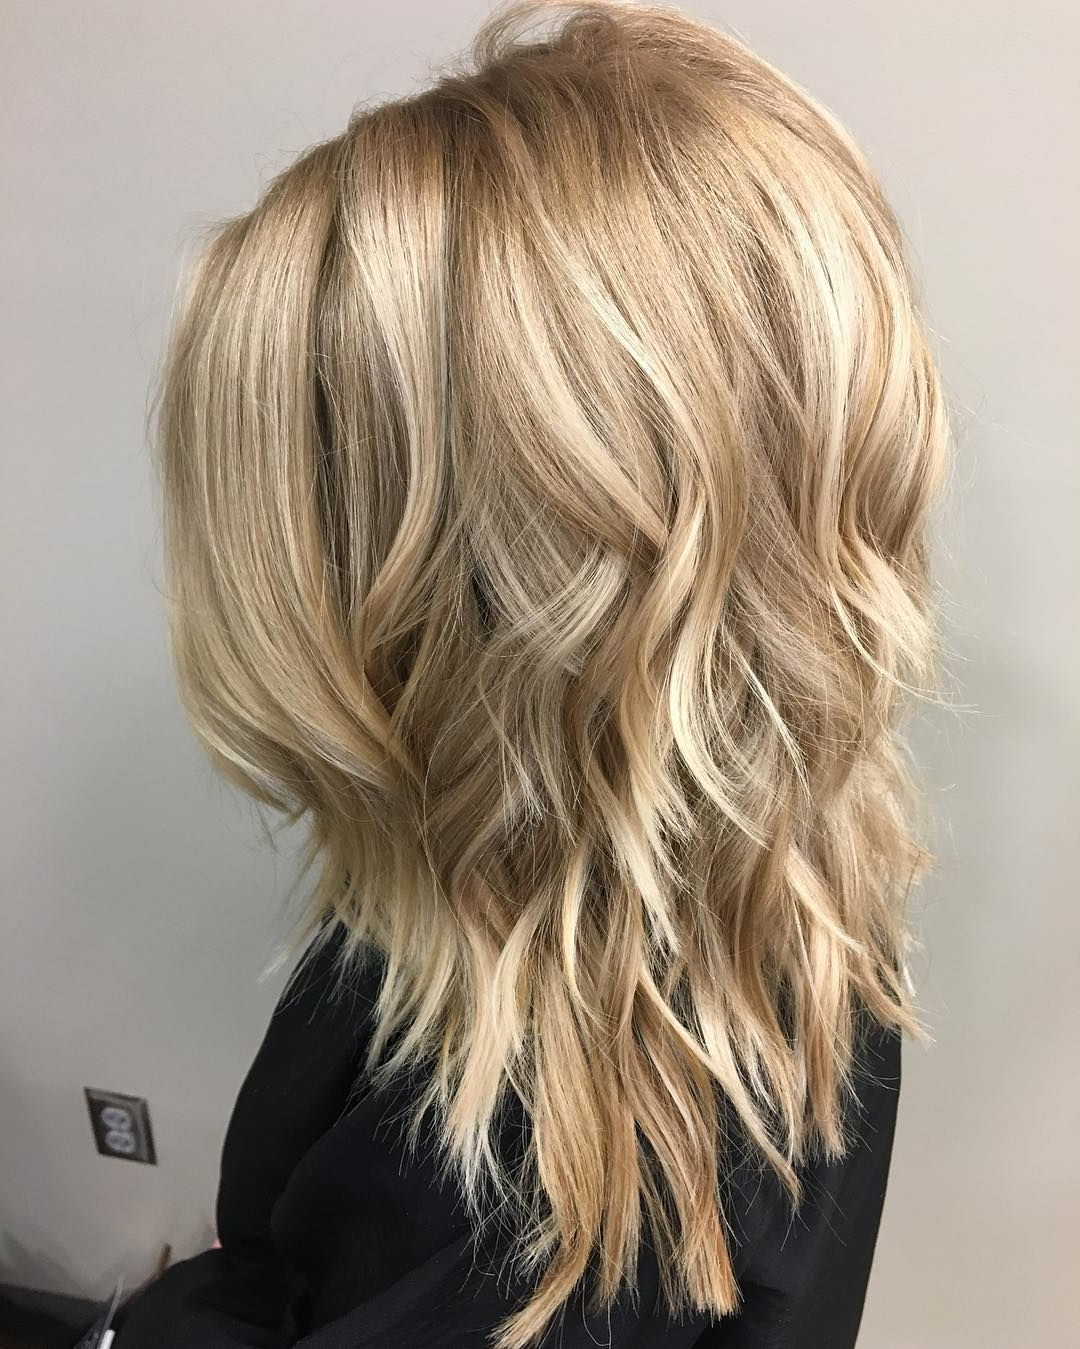 Medium Hairstyle : Medium Length Layered Hairstyles Adorable With Throughout Fashionable Mid Length Haircuts With Curled Layers (View 15 of 20)